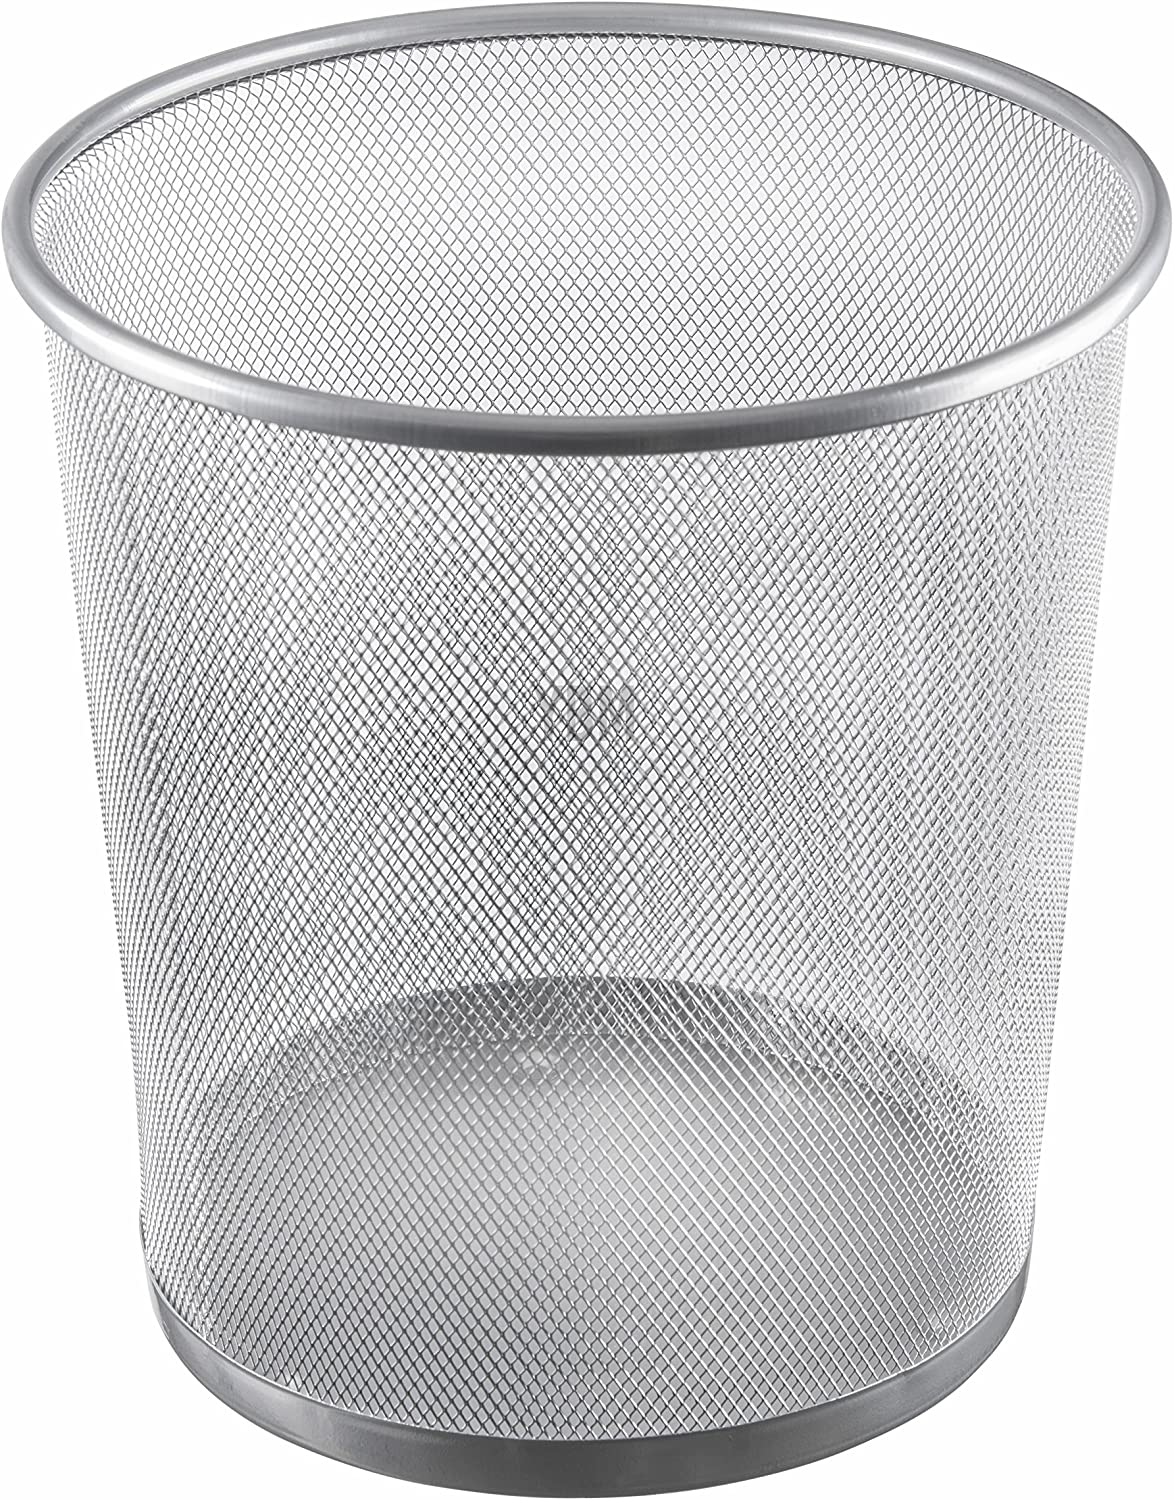 Ybmhome Steel Mesh Round Open Top Waste Basket Bin Trash Can for Office Home 2485 (1, Silver)